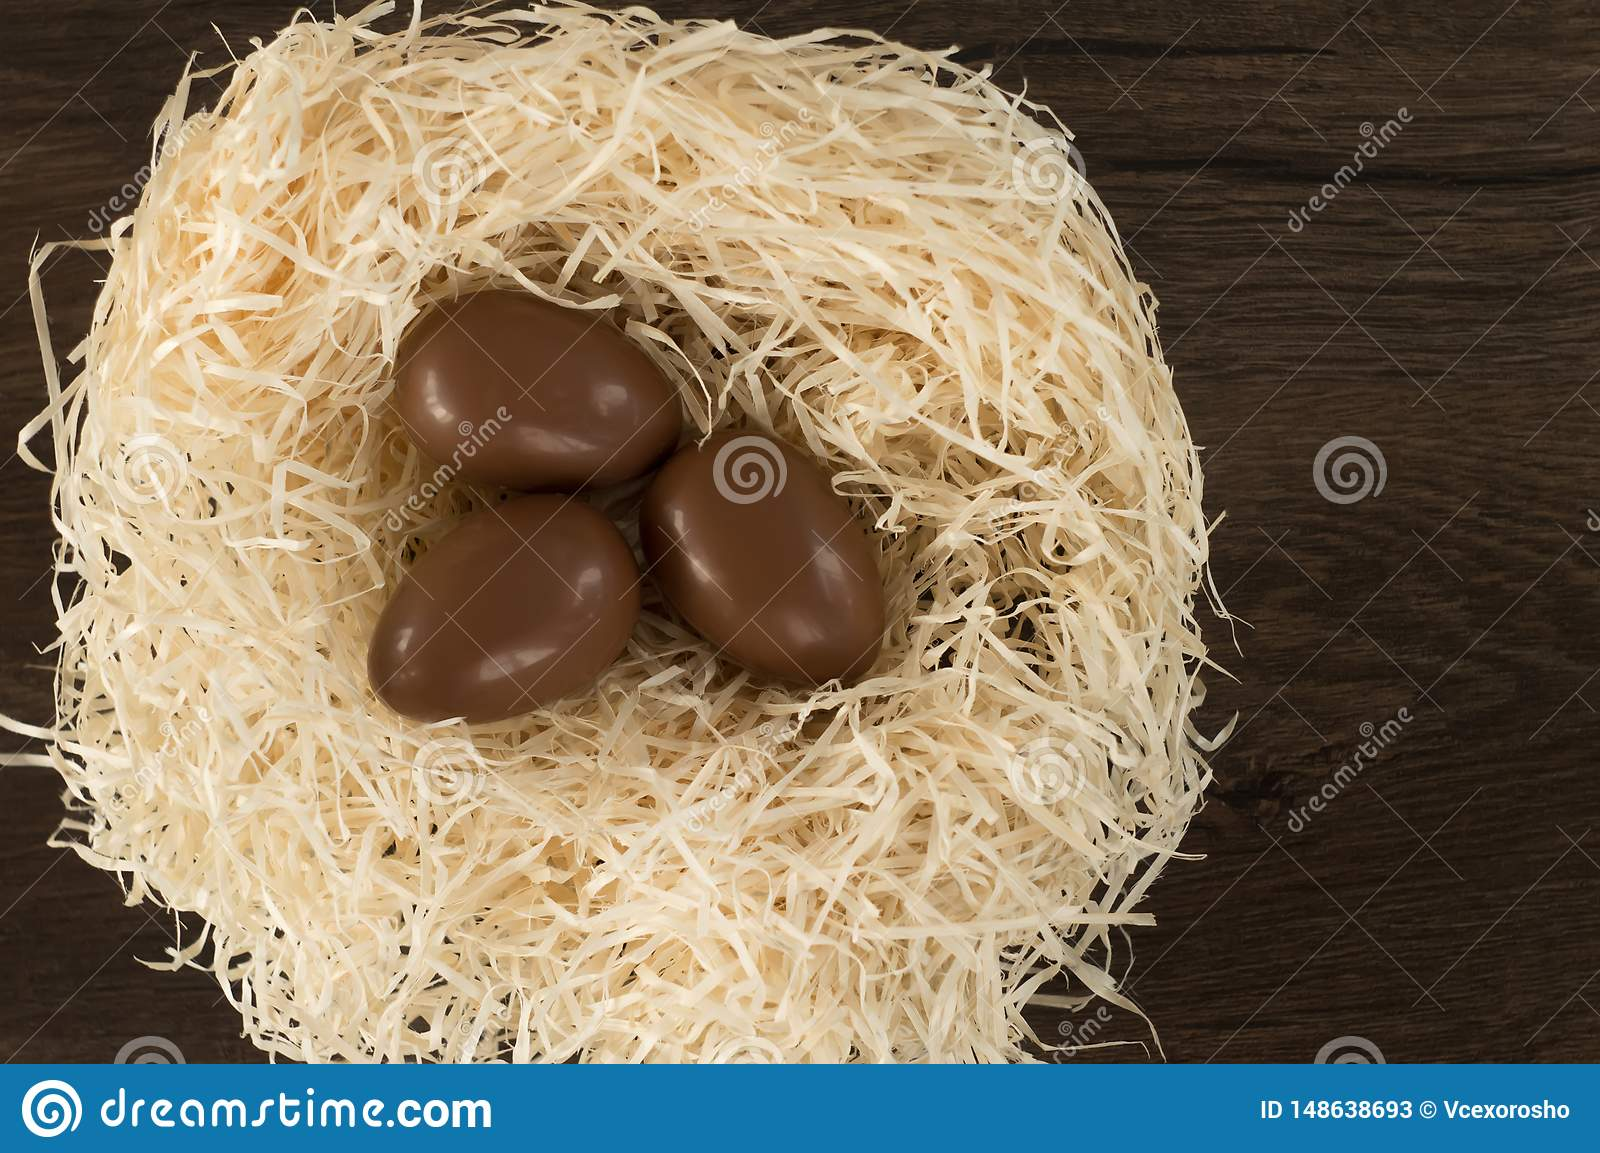 Easter. Chocolate eggs lie in a nest on a wooden brown table